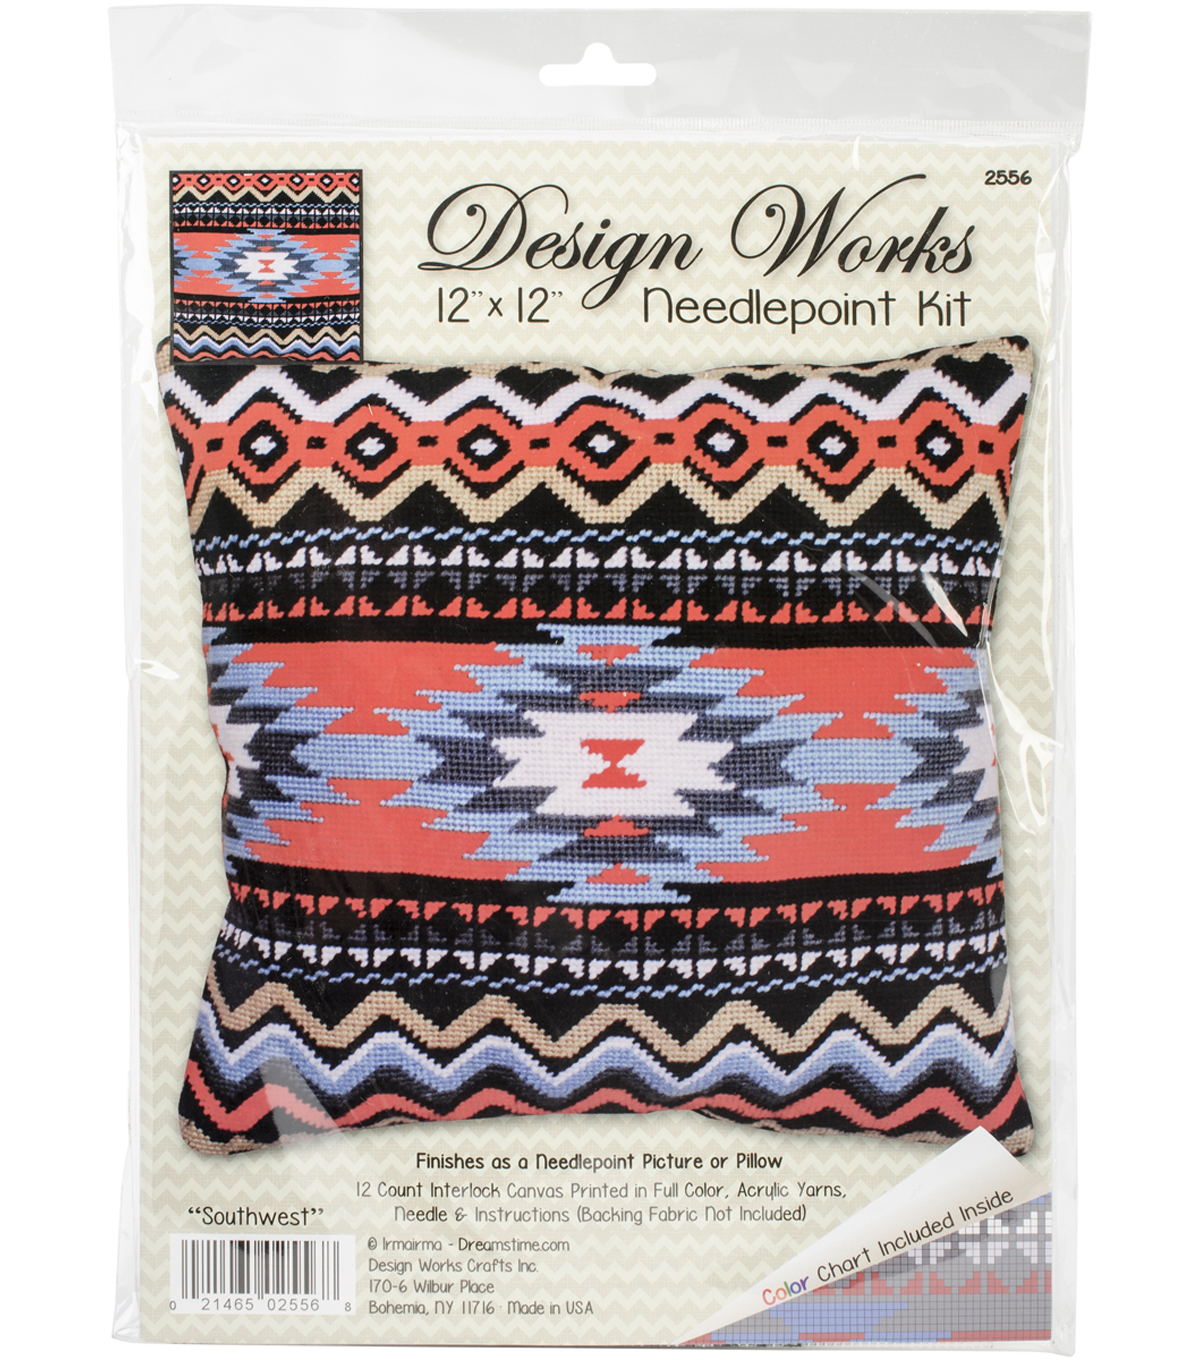 Southwest Needlepoint Kit 12\u0022X12\u0022 Stitched In Yarn